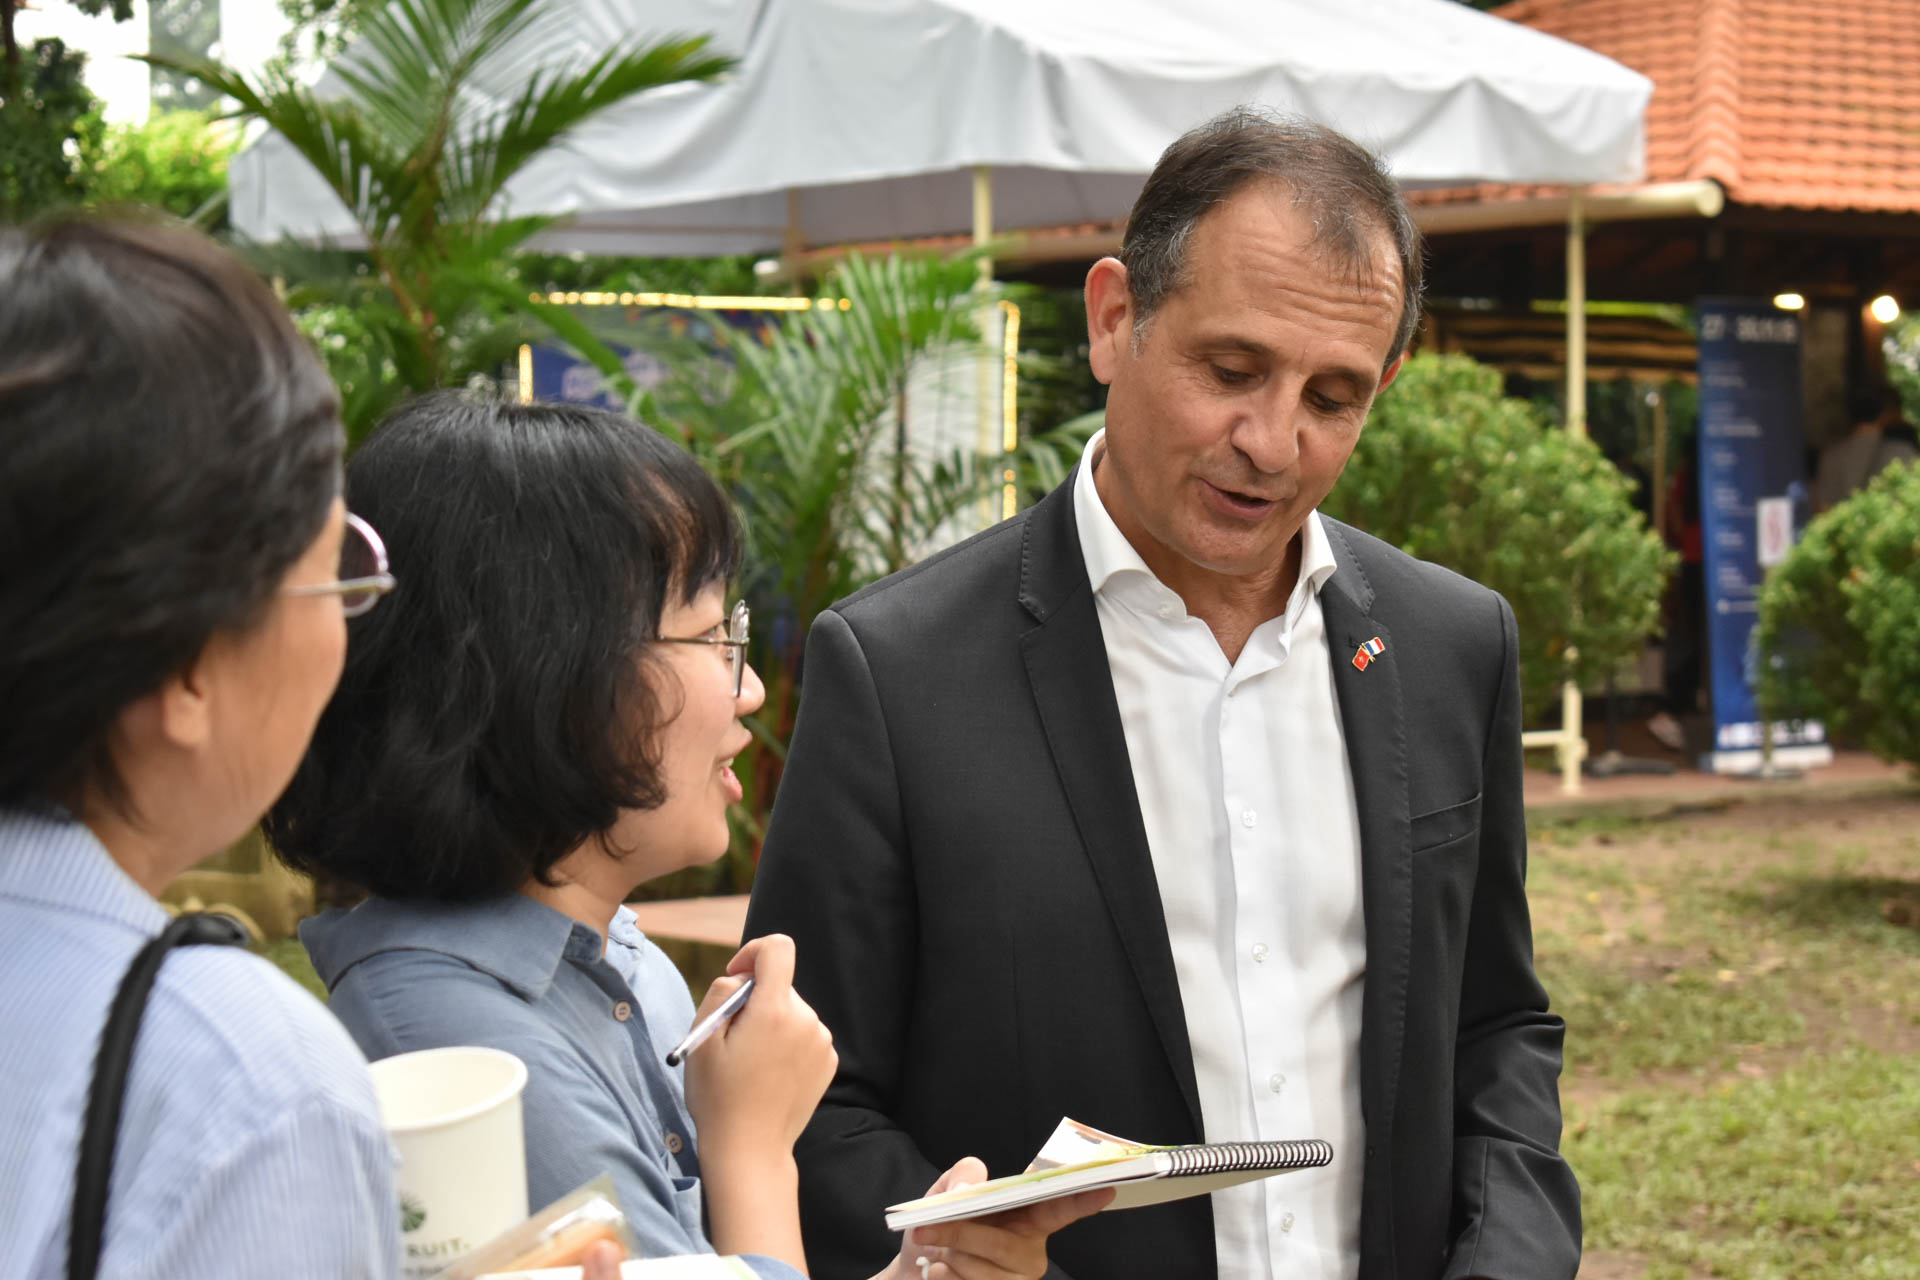 French Consul General in Ho Chi Minh City Vincent Floreani chats with a group of visitors on the European Heritage Days, September 21, 2019. Photo: Tuan Son / Tuoi Tre News